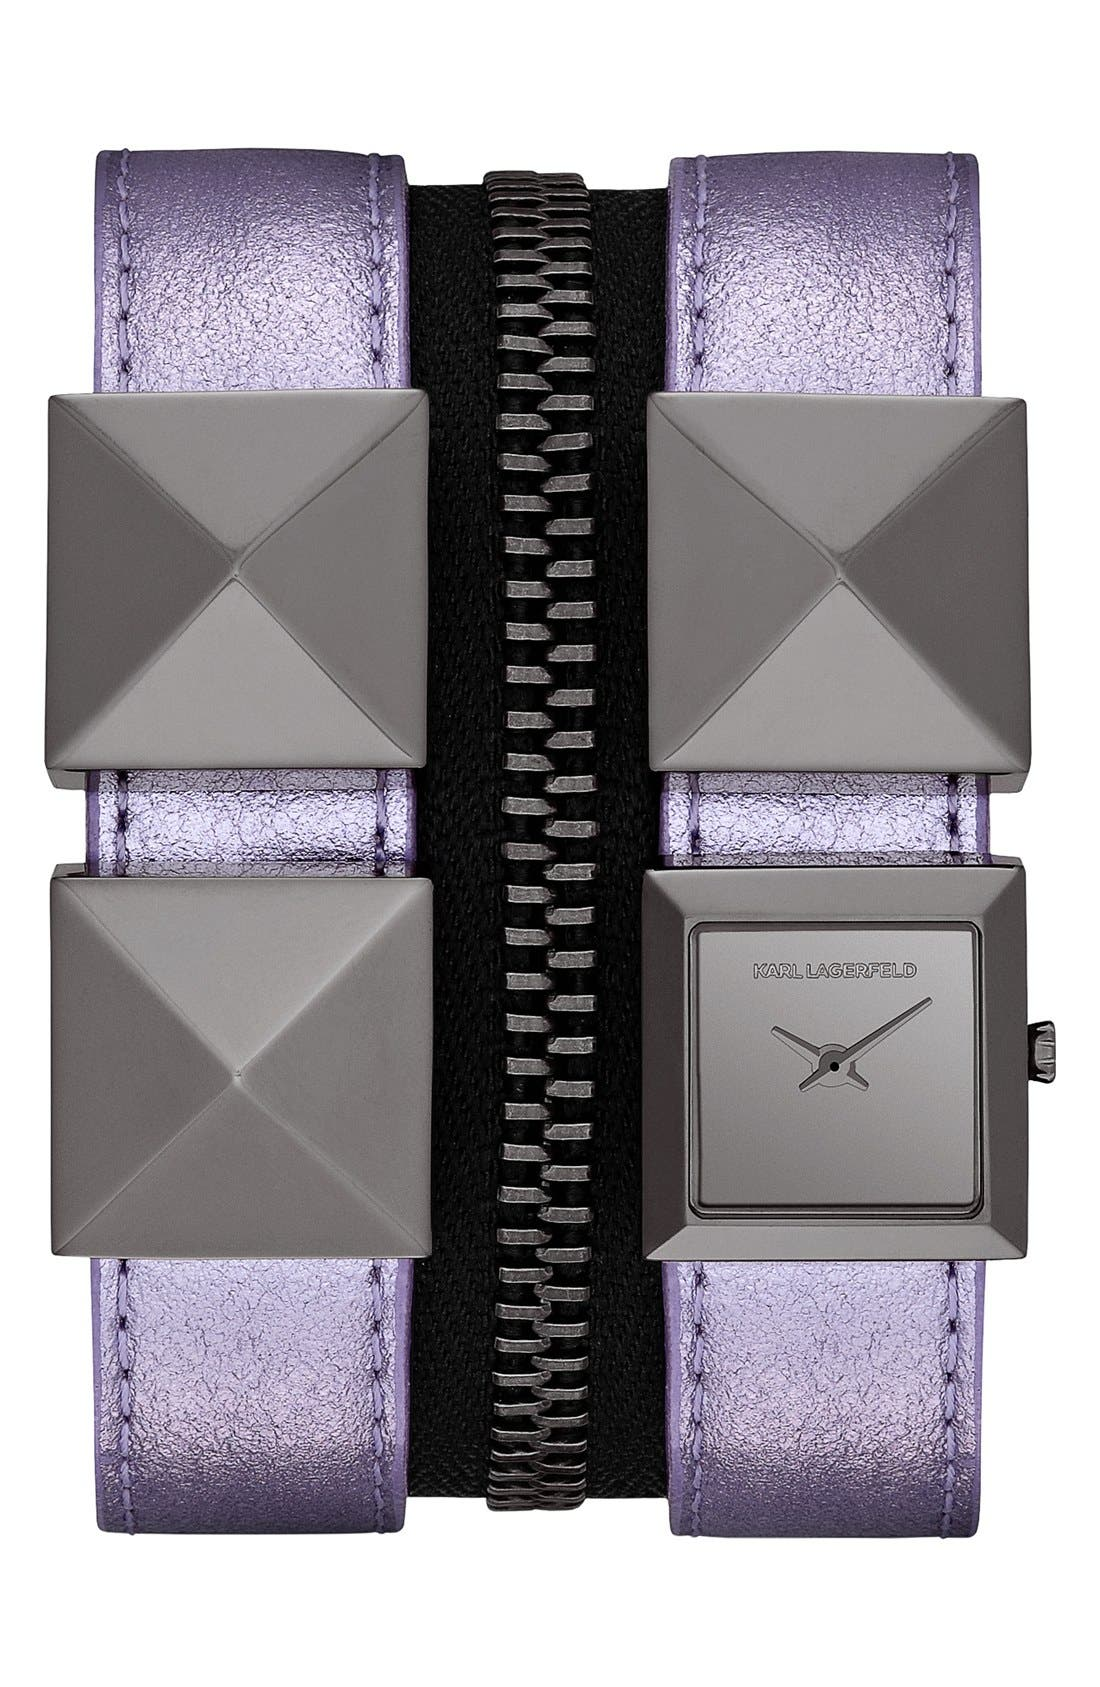 Main Image - KARL LAGERFELD Double Strap Cuff Watch